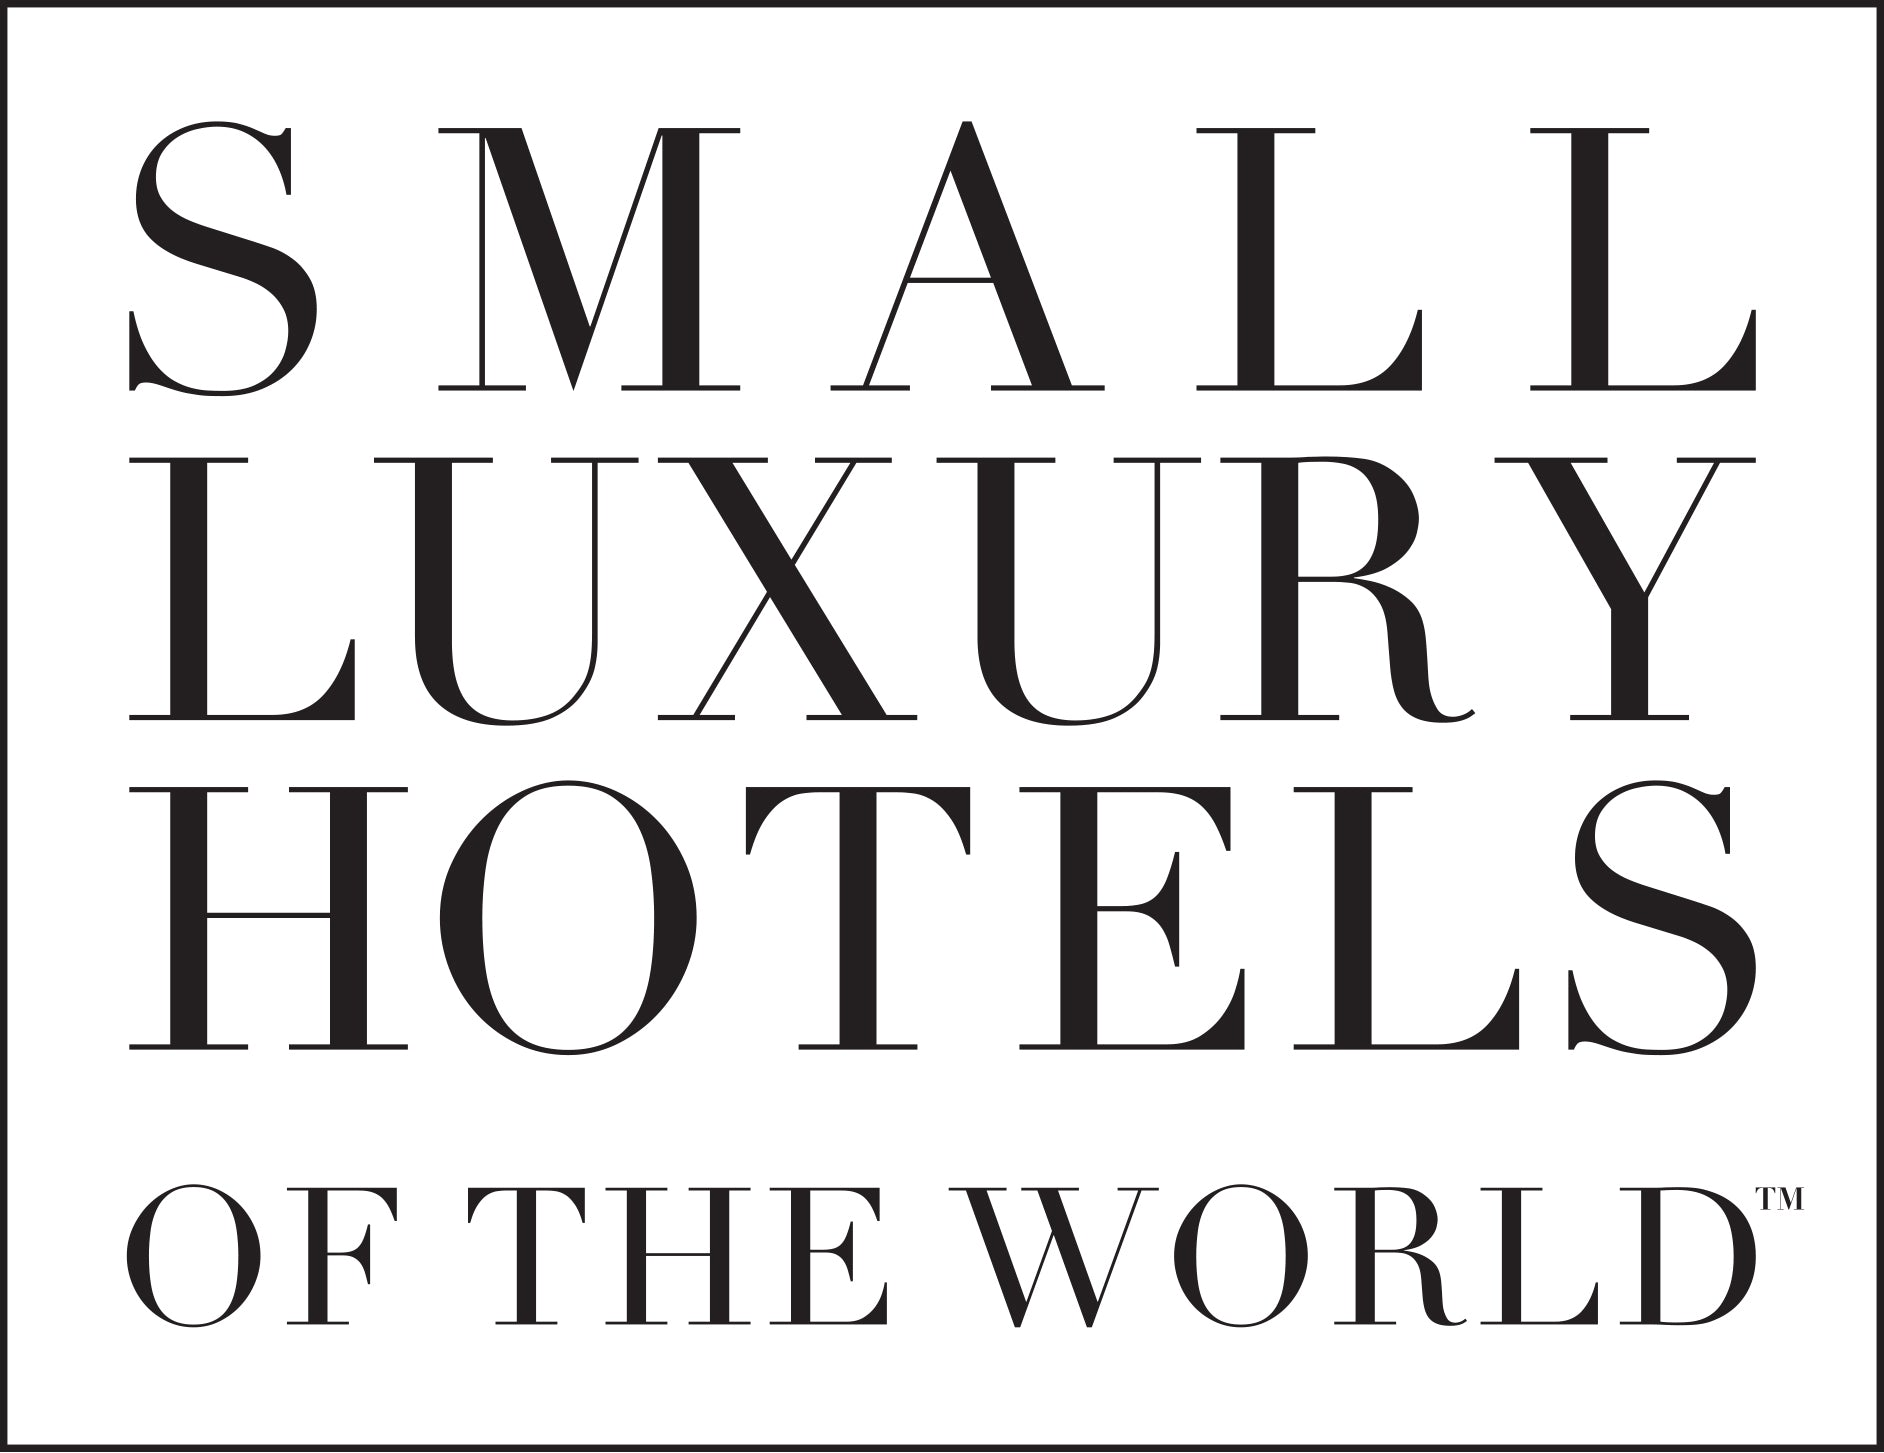 Small luxury hotels icon